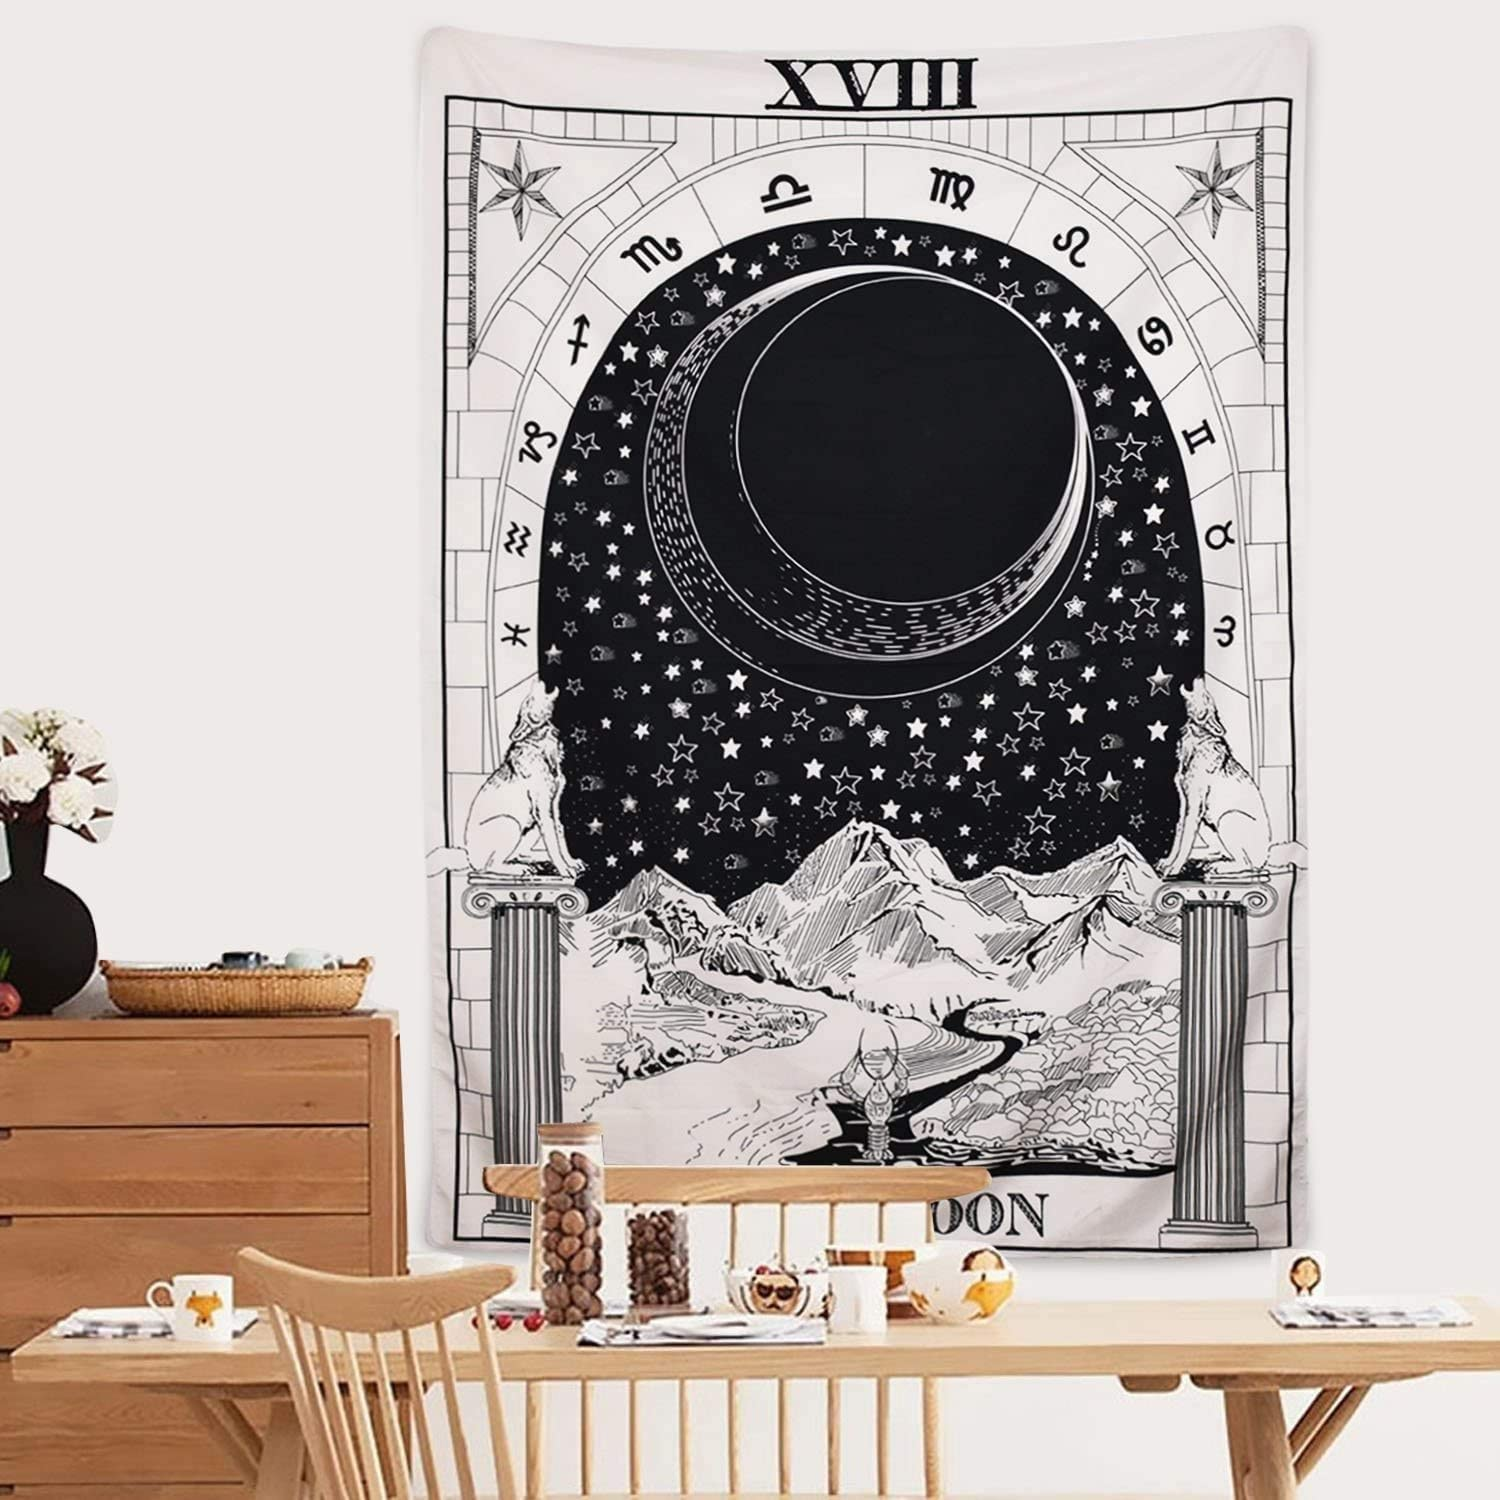 The Moon The Star The Sun Tapestry Wall Hanging Medieval Europe Divination White and Black Wall Decor Small Black Moon Tarot Tapestry